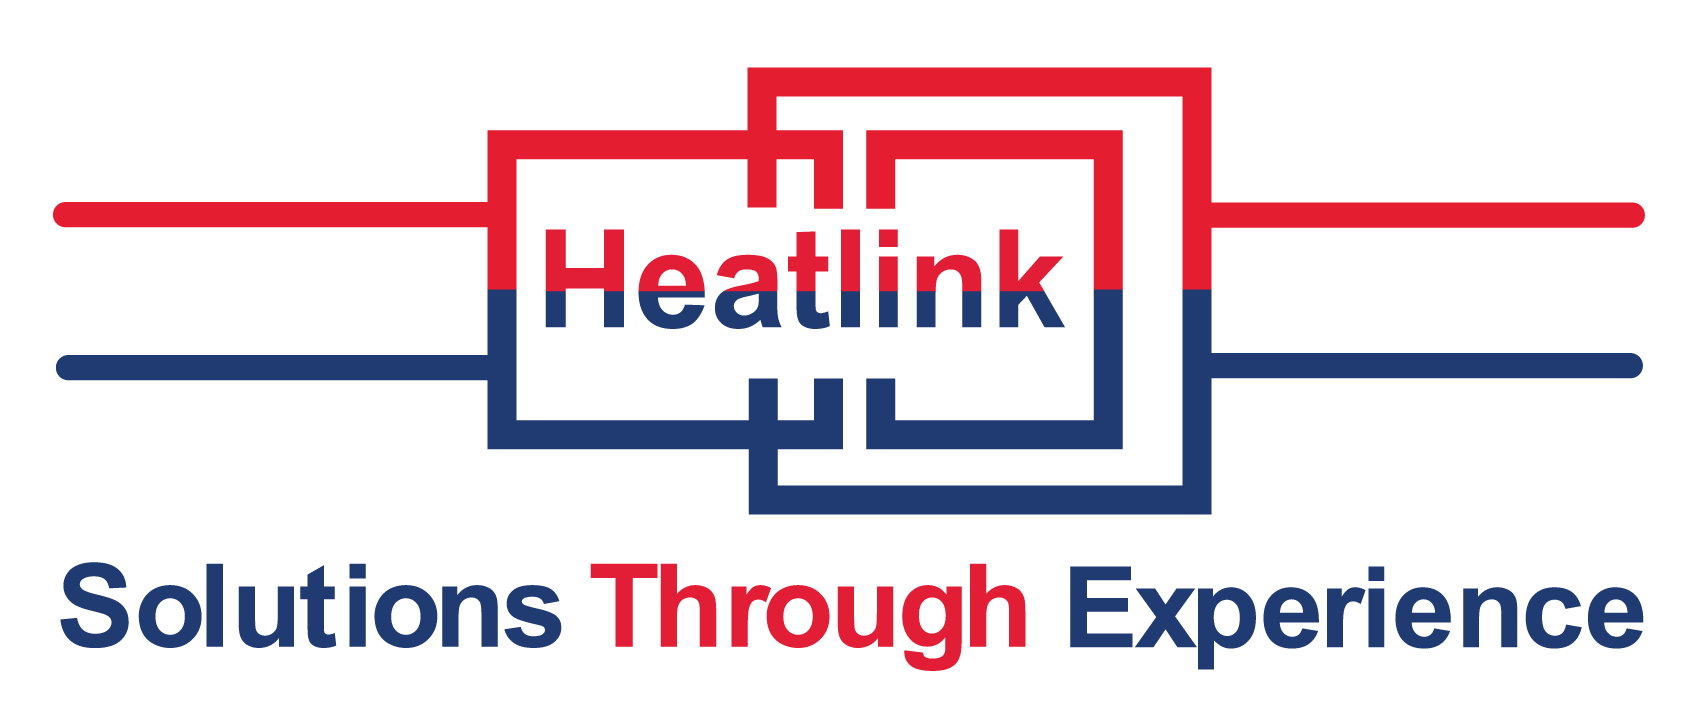 HEATLINK LOGO - Park Hill Flats - Sheffield